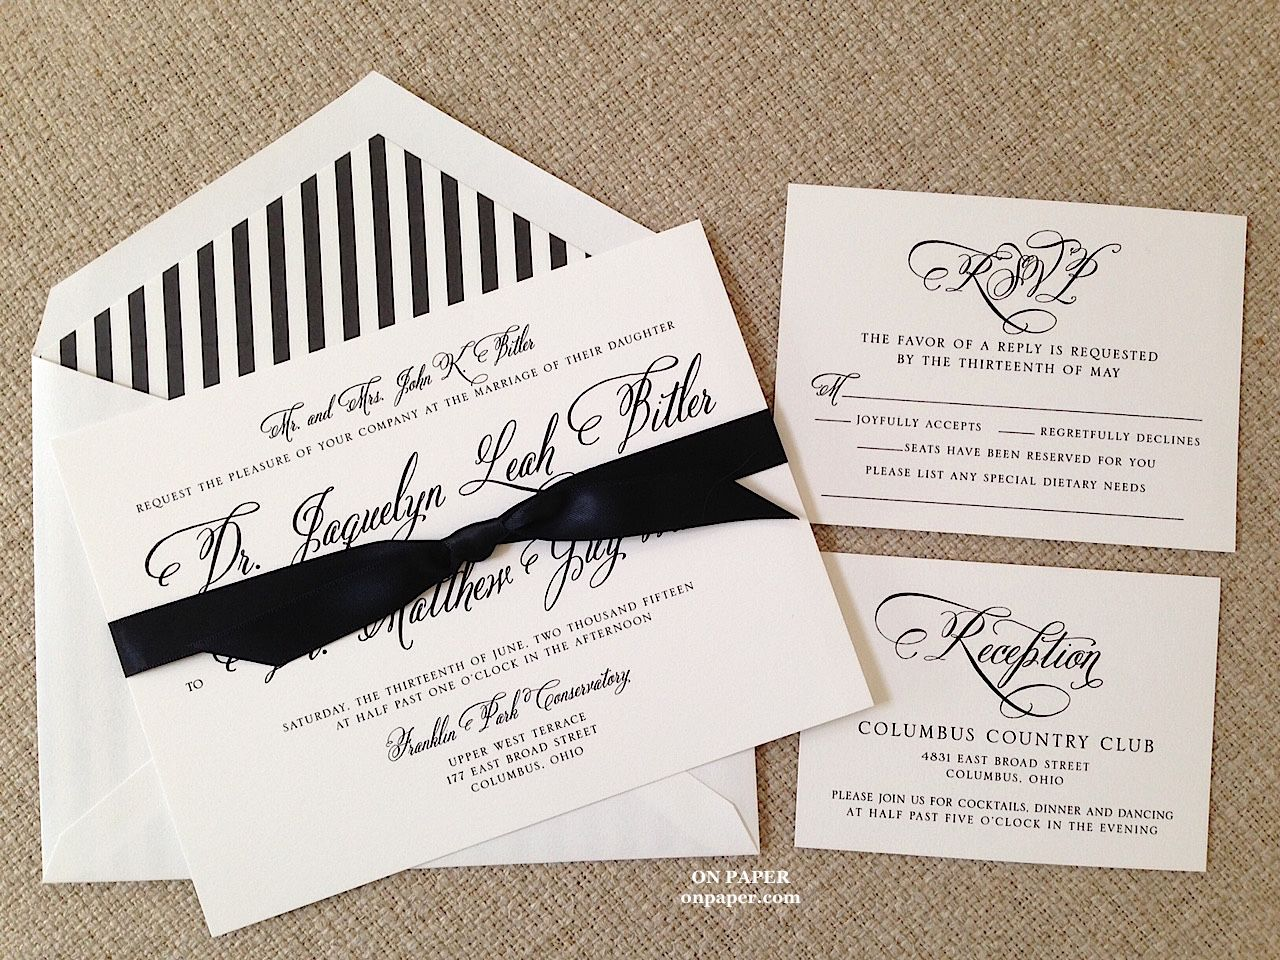 Perfectly Scripted Wedding Invitation For Jacquelyn And Matt